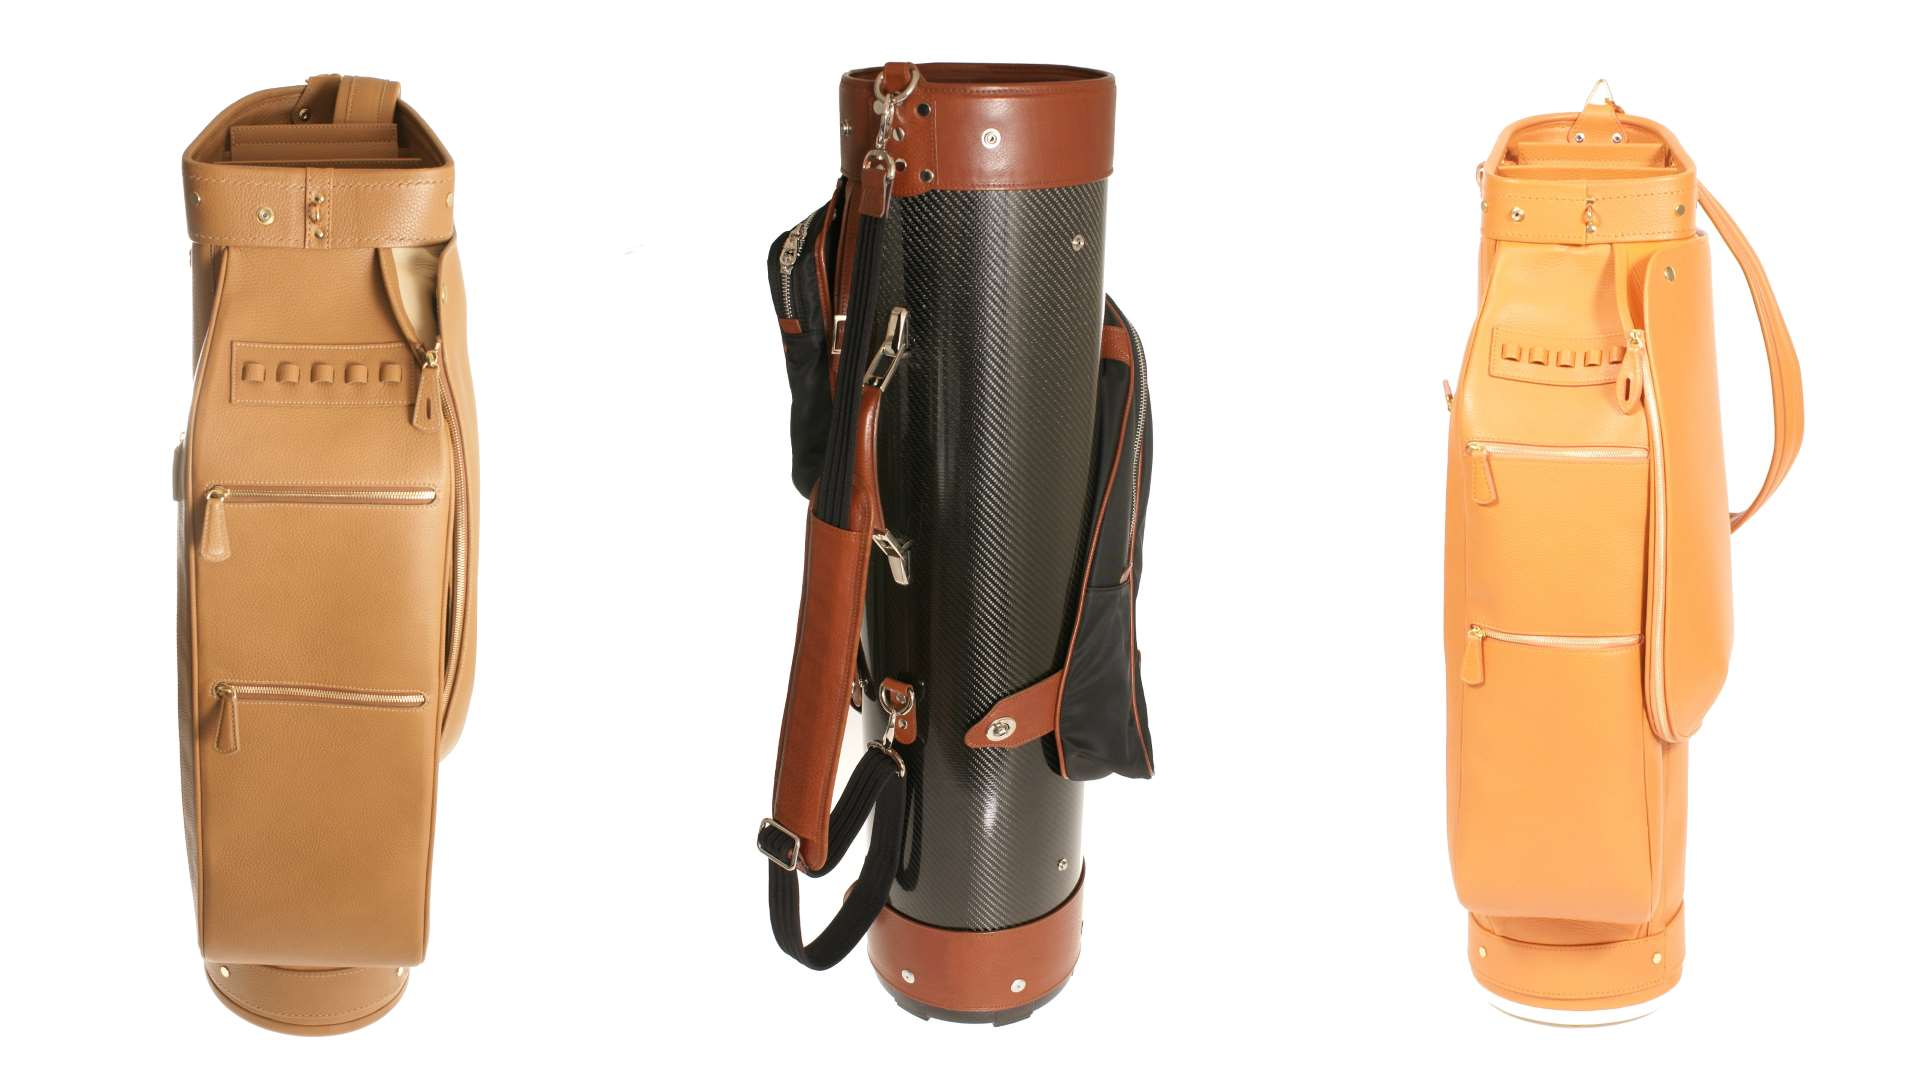 golf bags by Treccani Milano features three leather golf bags with a white background